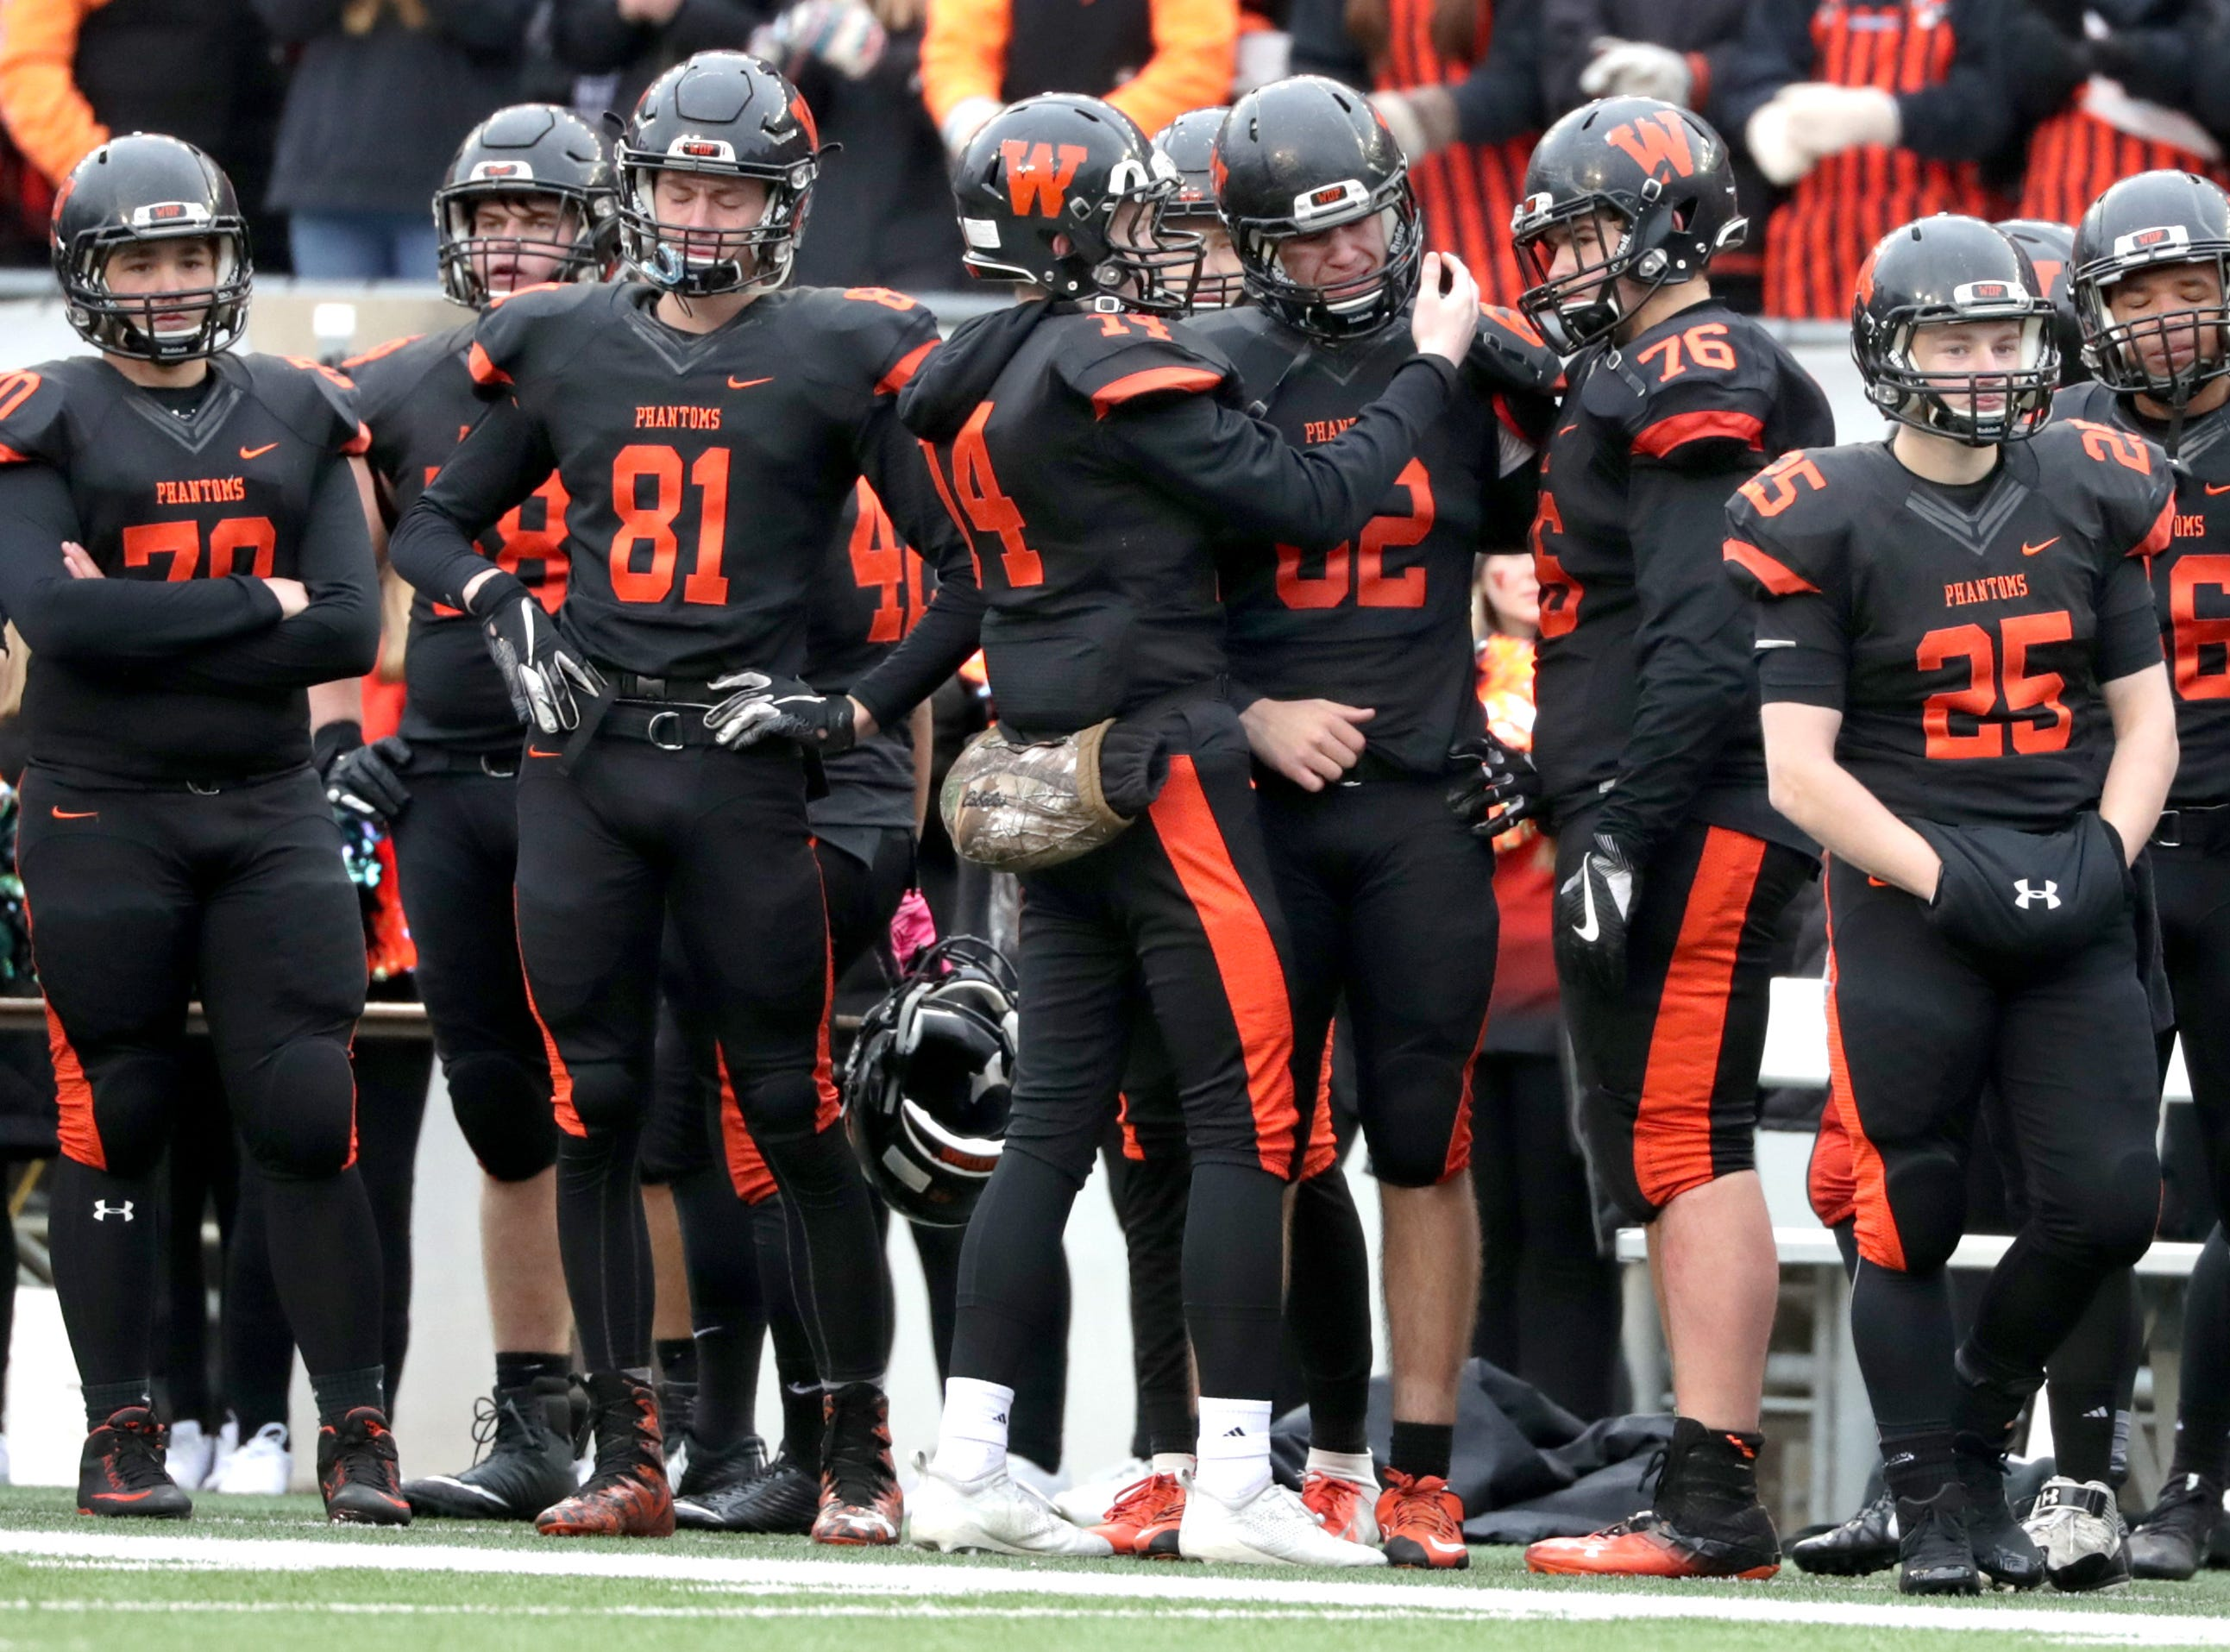 West De Pere High School against Catholic Memorial High School during the WIAA Division  3 state championship football game on Friday, November 16, 2018, at Camp Randall in Madison, Wis. Wm. Glasheen/USA TODAY NETWORK-Wisconsin.